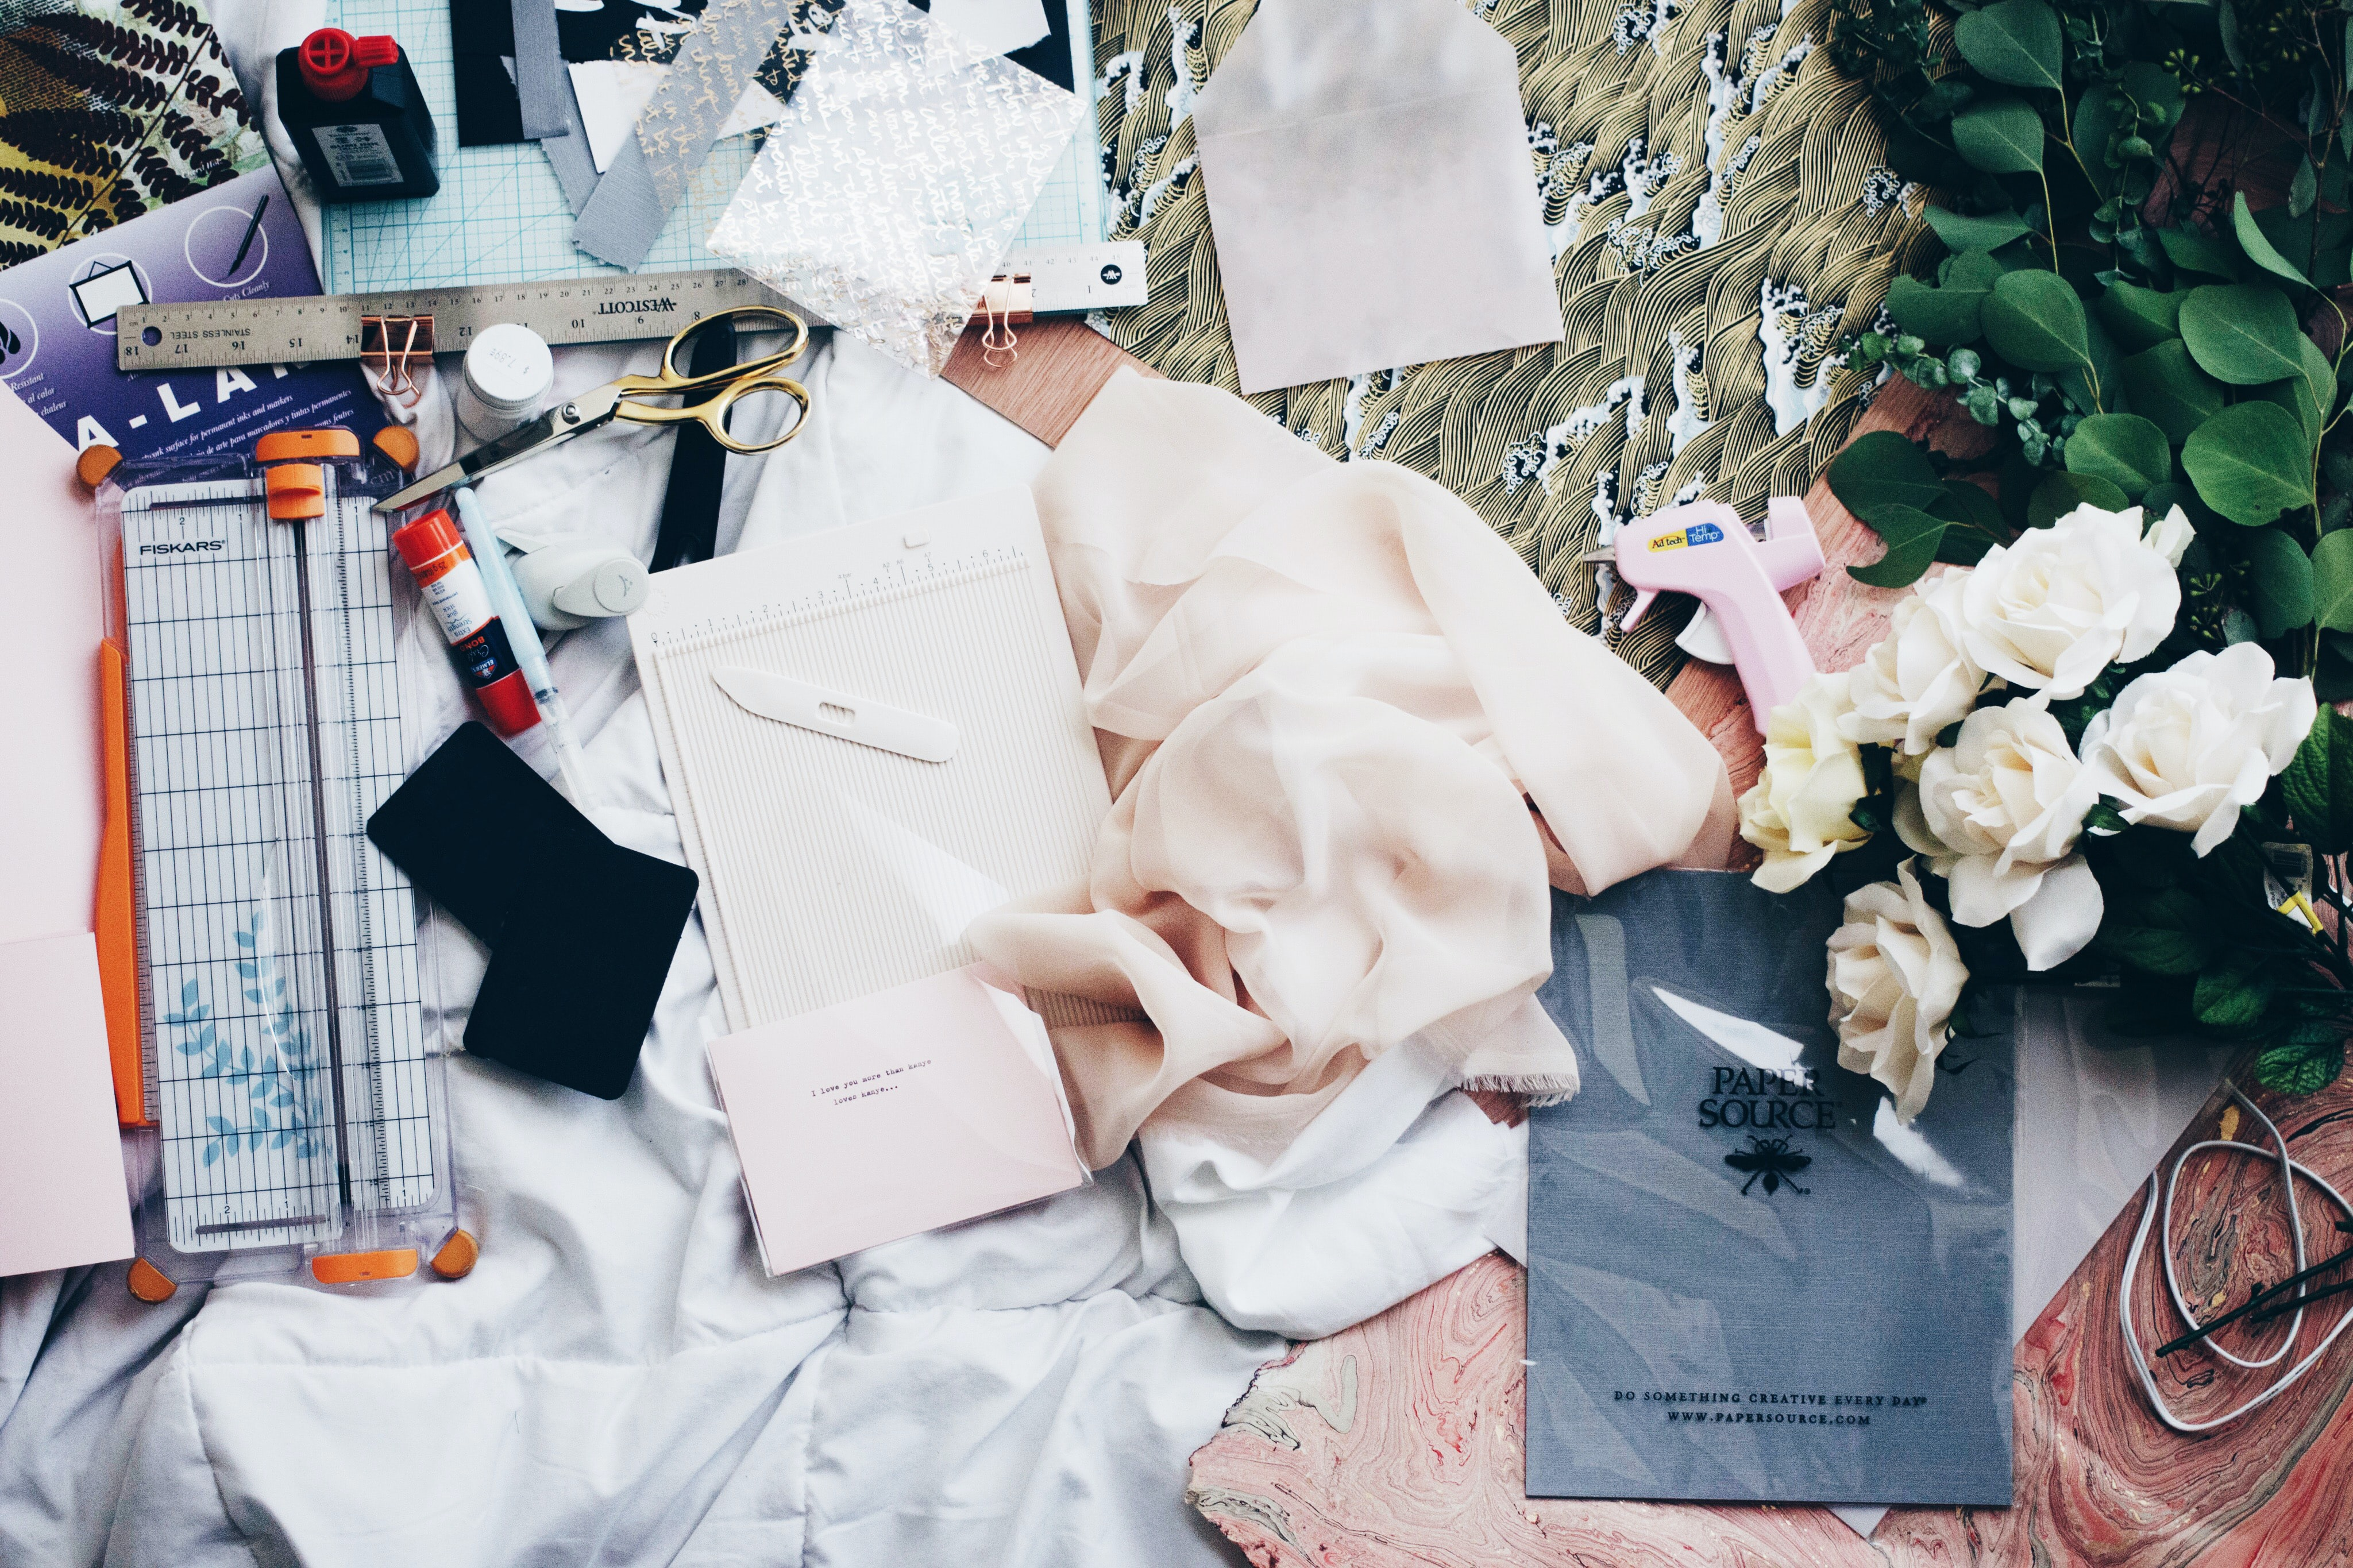 Clothes are more than fashion and assembly factories - they are made out of cloth, and that comes from somewhere.